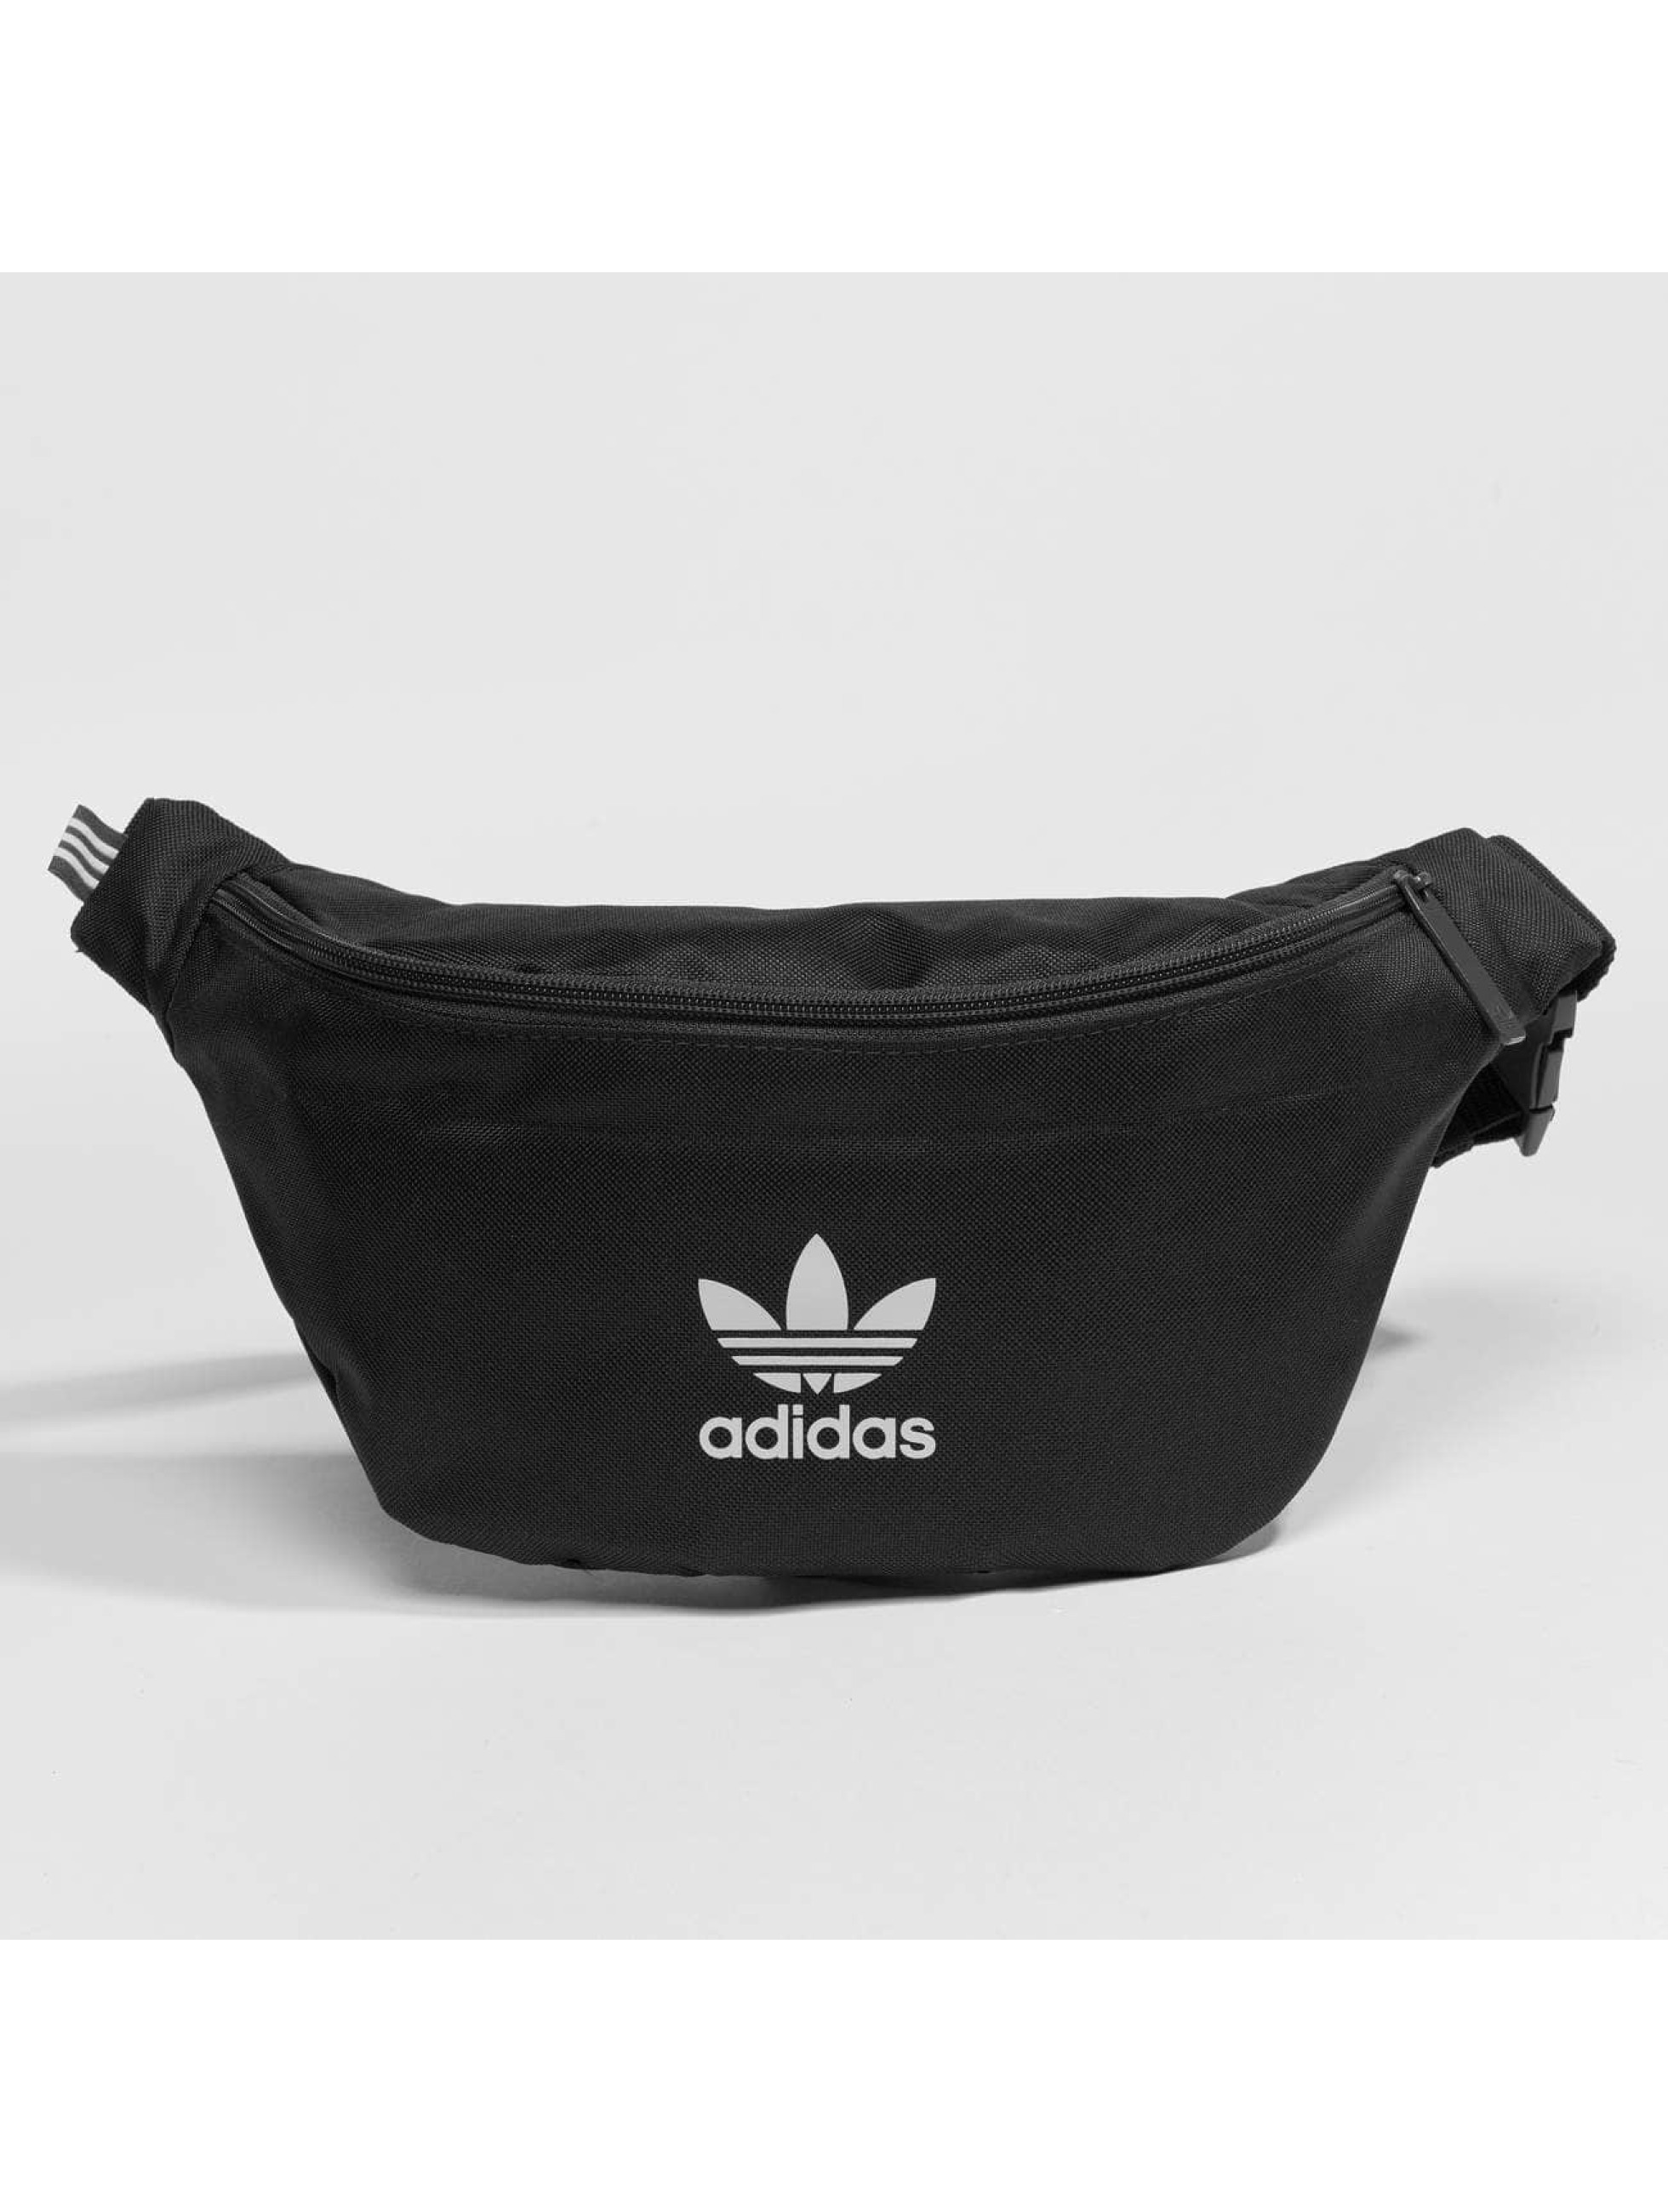 adidas originals Borsa Basic grigio